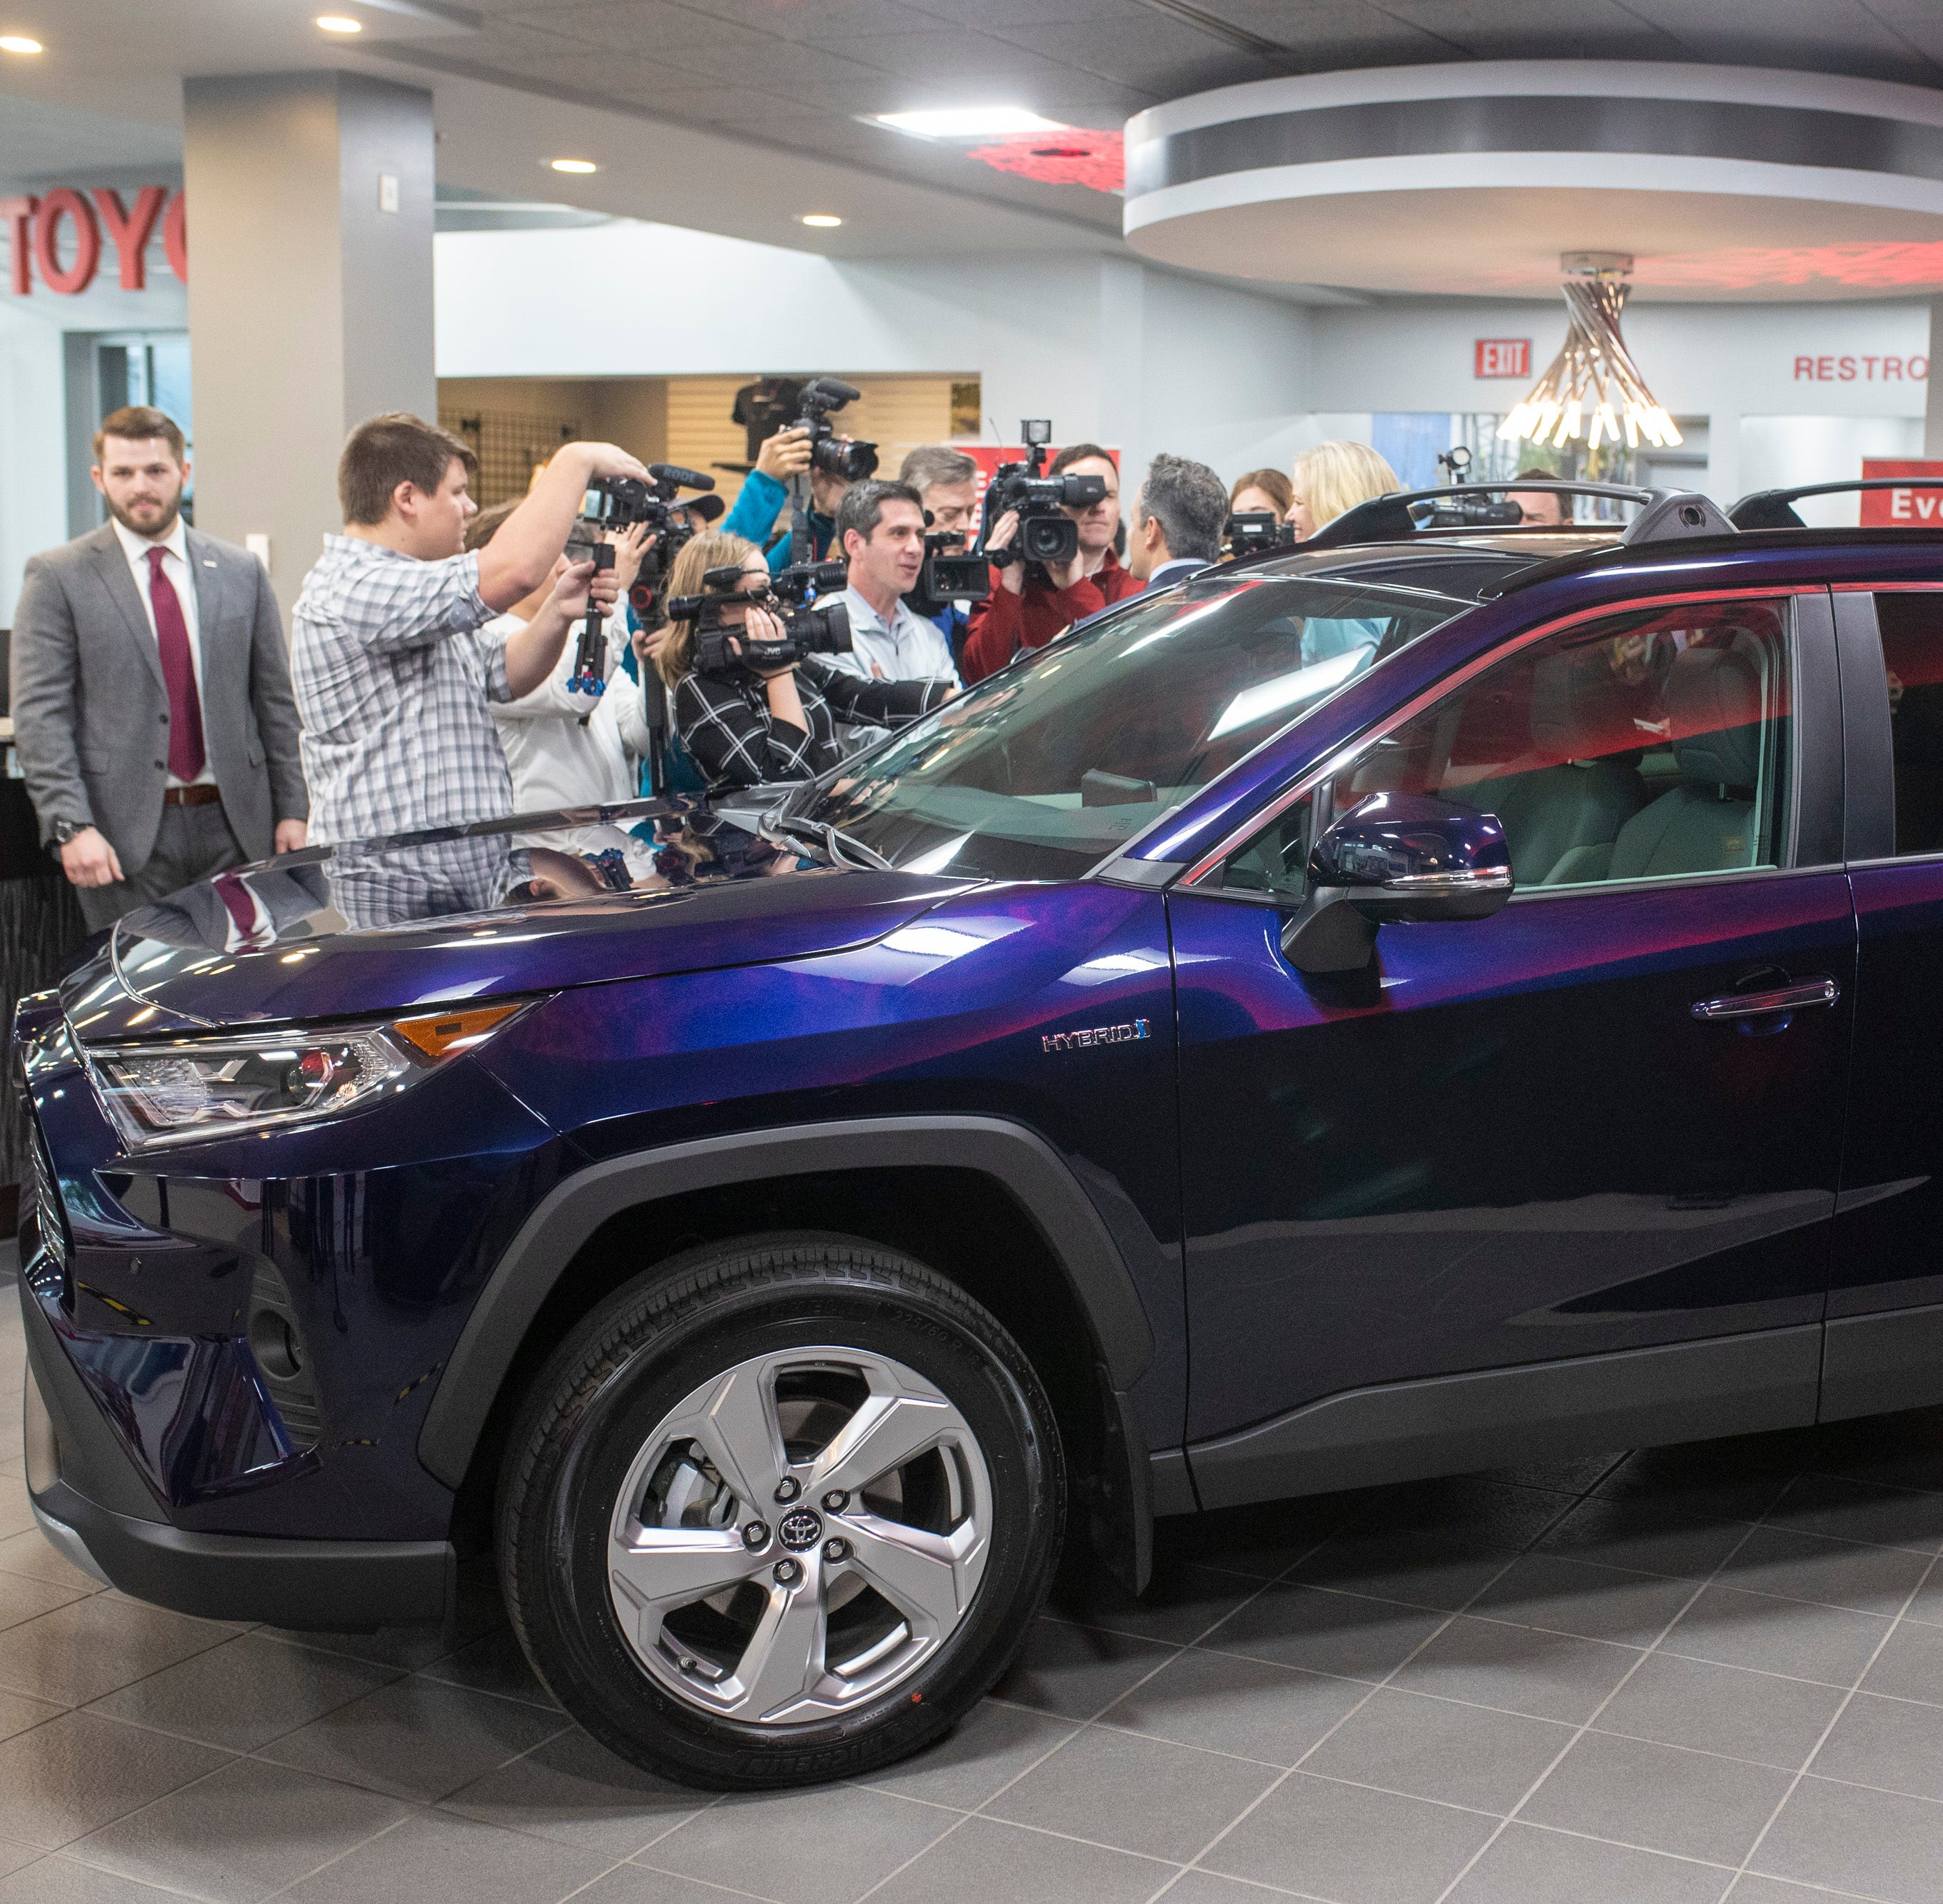 Toyota to invest $238 million, add Lexus and RAV4 hybrids at Kentucky plant